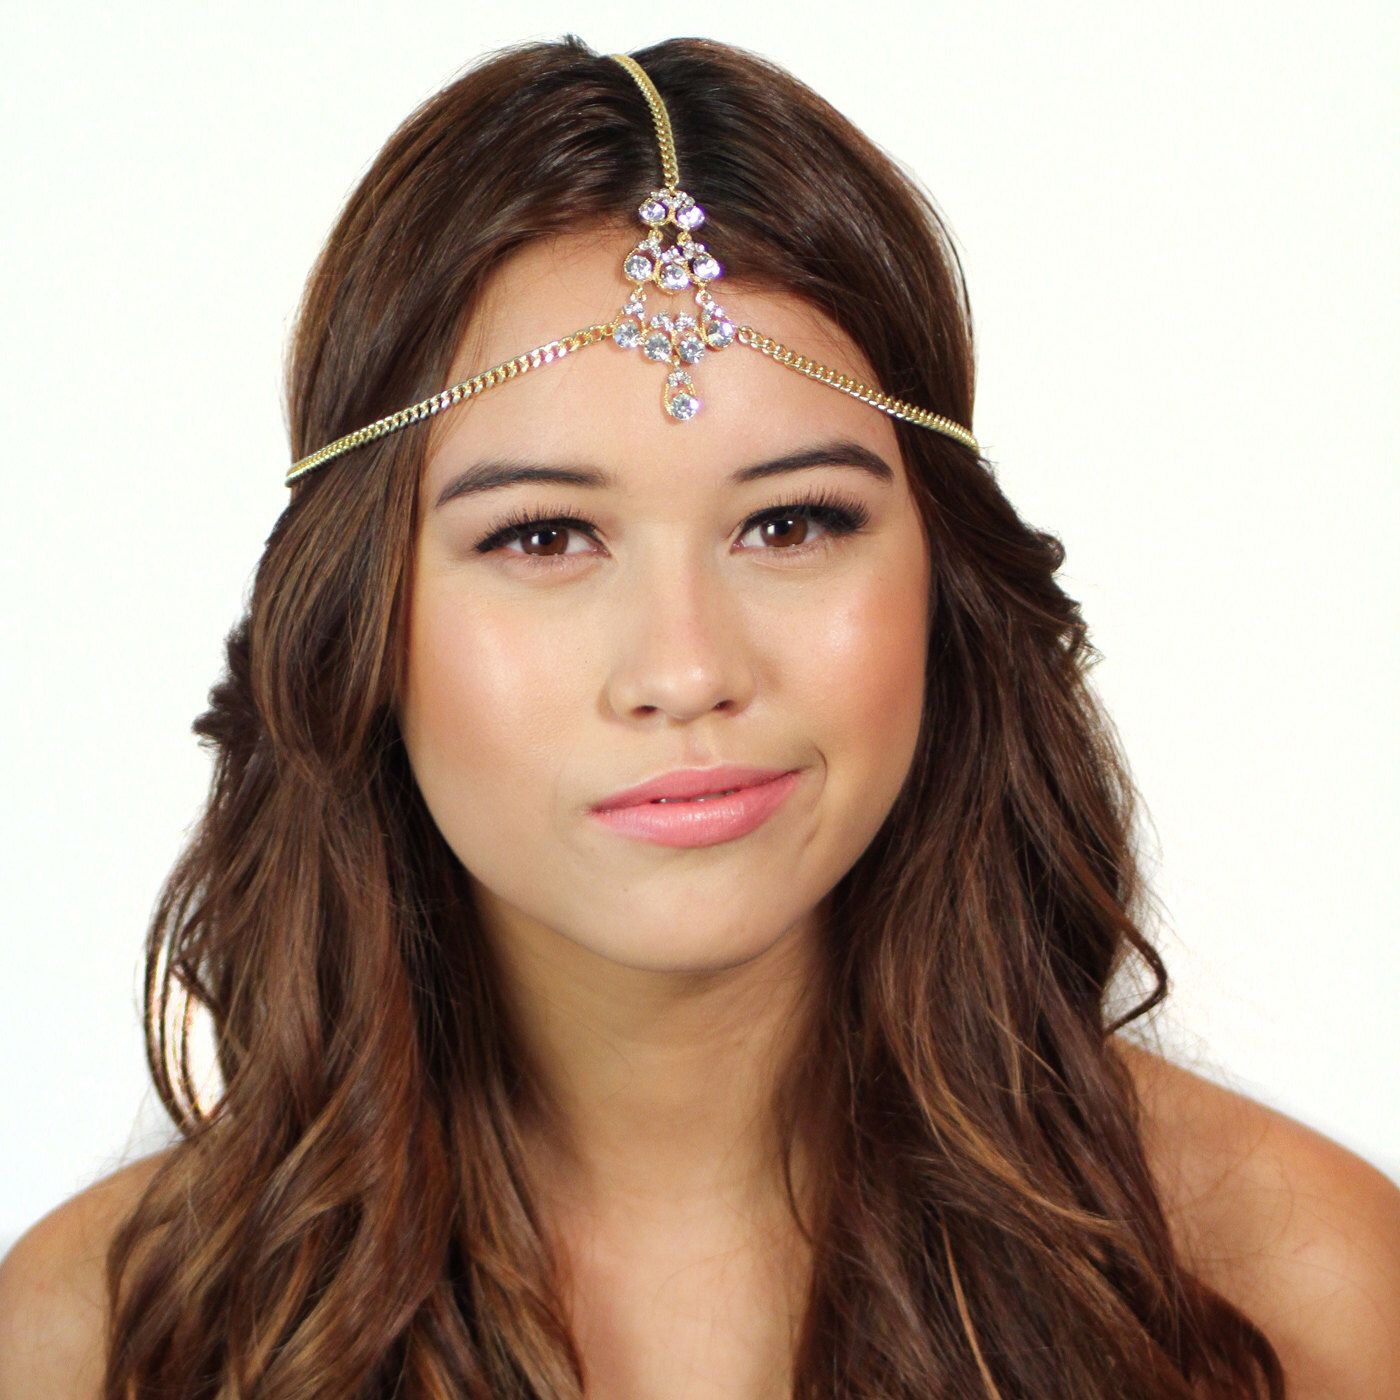 Gold Crystal Tikka Chain Headpiece by ShopKP on Etsy https://www.etsy.com/listing/157822361/gold-crystal-tikka-chain-headpiece